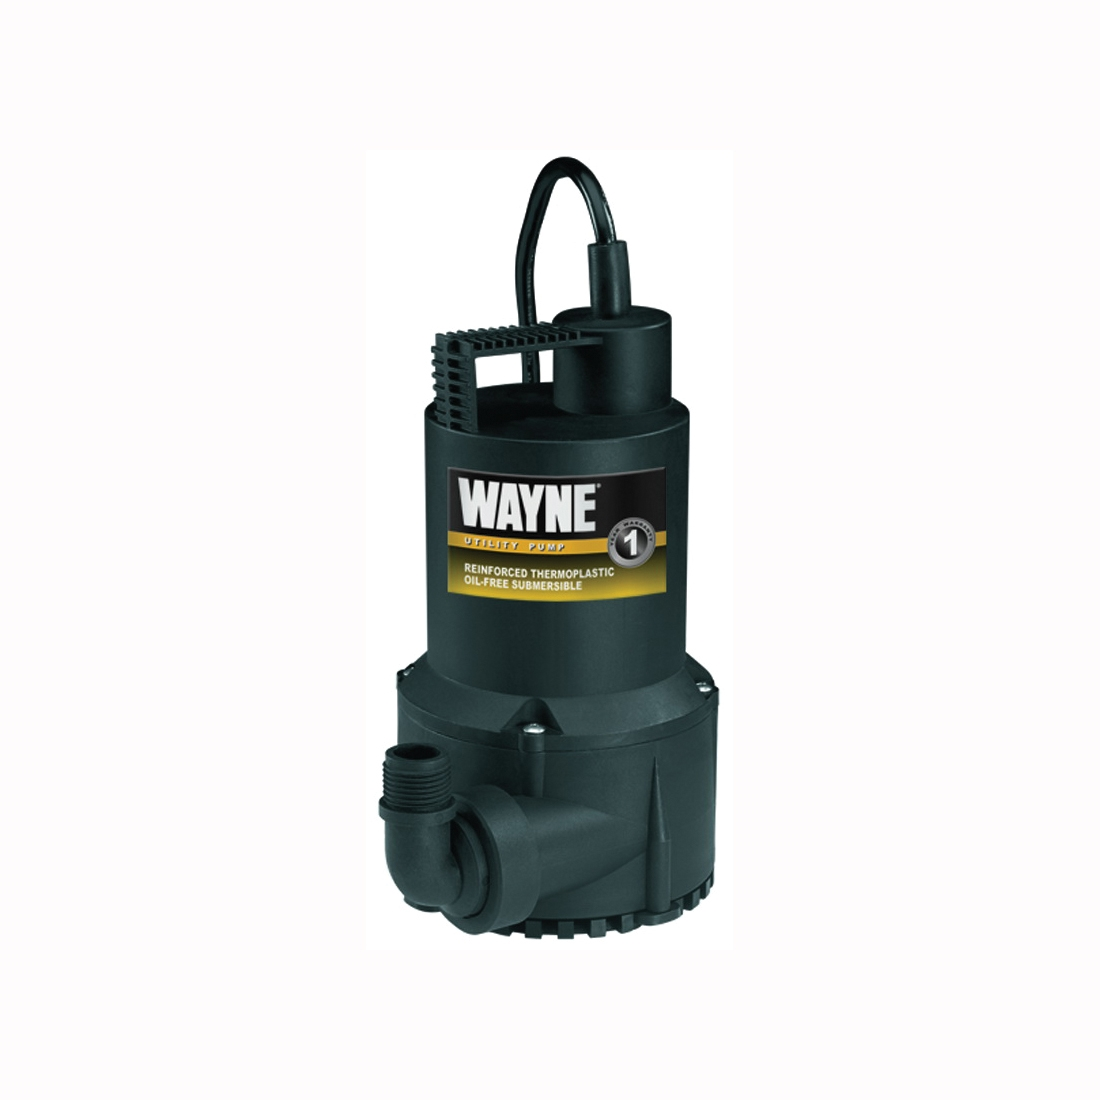 Picture of WAYNE RUP160 Utility Pump, 1-Phase, 2.5 A, 120 V, 0.166 hp, 1-1/4 in Outlet, 3100 gph, Thermoplastic Impeller